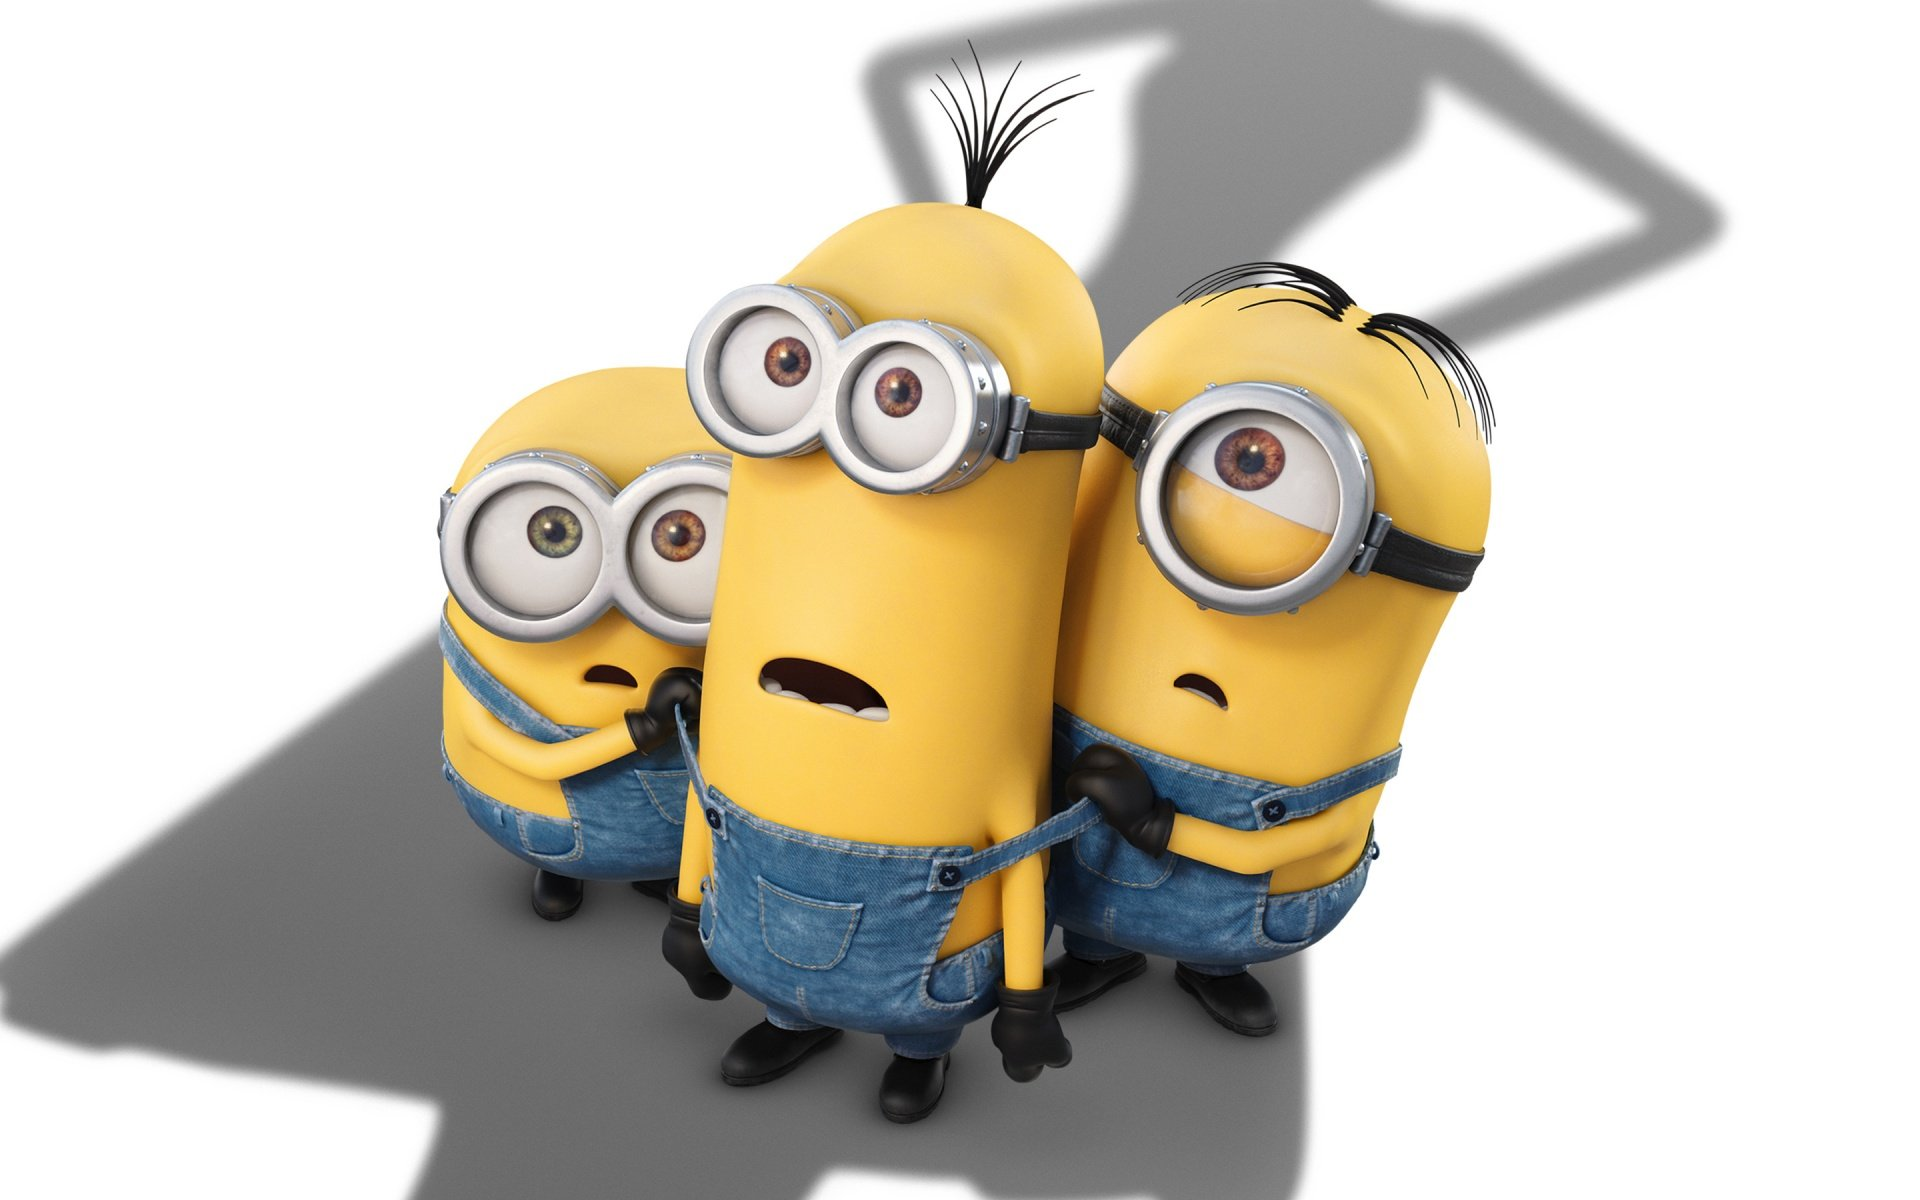 2015 Minions Movie Wallpapers HD Wallpapers 1920x1200